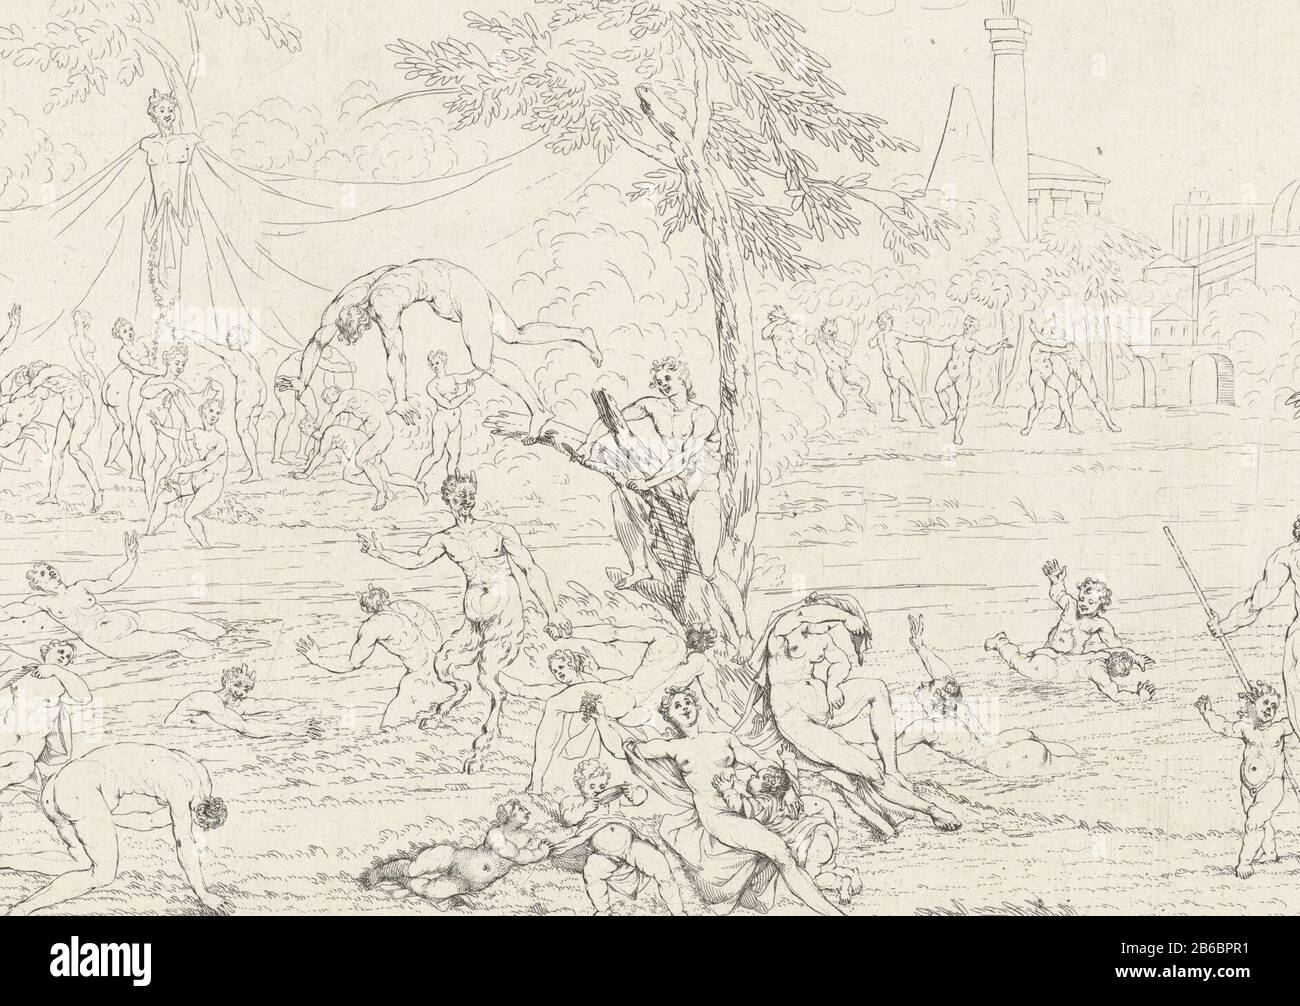 Bathing nymphs and Bacchantes Life of Bacchae (series title) Bathing nymphs and Bacchantes. In the middle of a tree, Where: from a man drops into the water. In the background left several people at a satyr picture right two pairs, dancing to the music of two satyrs. Behind a column statue. (7) Manufacture Vervaardiger: print maker: Gerard Detector To own design of: Gerard Detector Publisher: Gerard Detector Place manufacture: Amsterdam Date: 1725 Physical characteristics: etching material: paper Technique: etching dimensions: sheet: h 198 mm × W 278 mm Subject: bacchanal: Bacchus with his wine Stock Photo